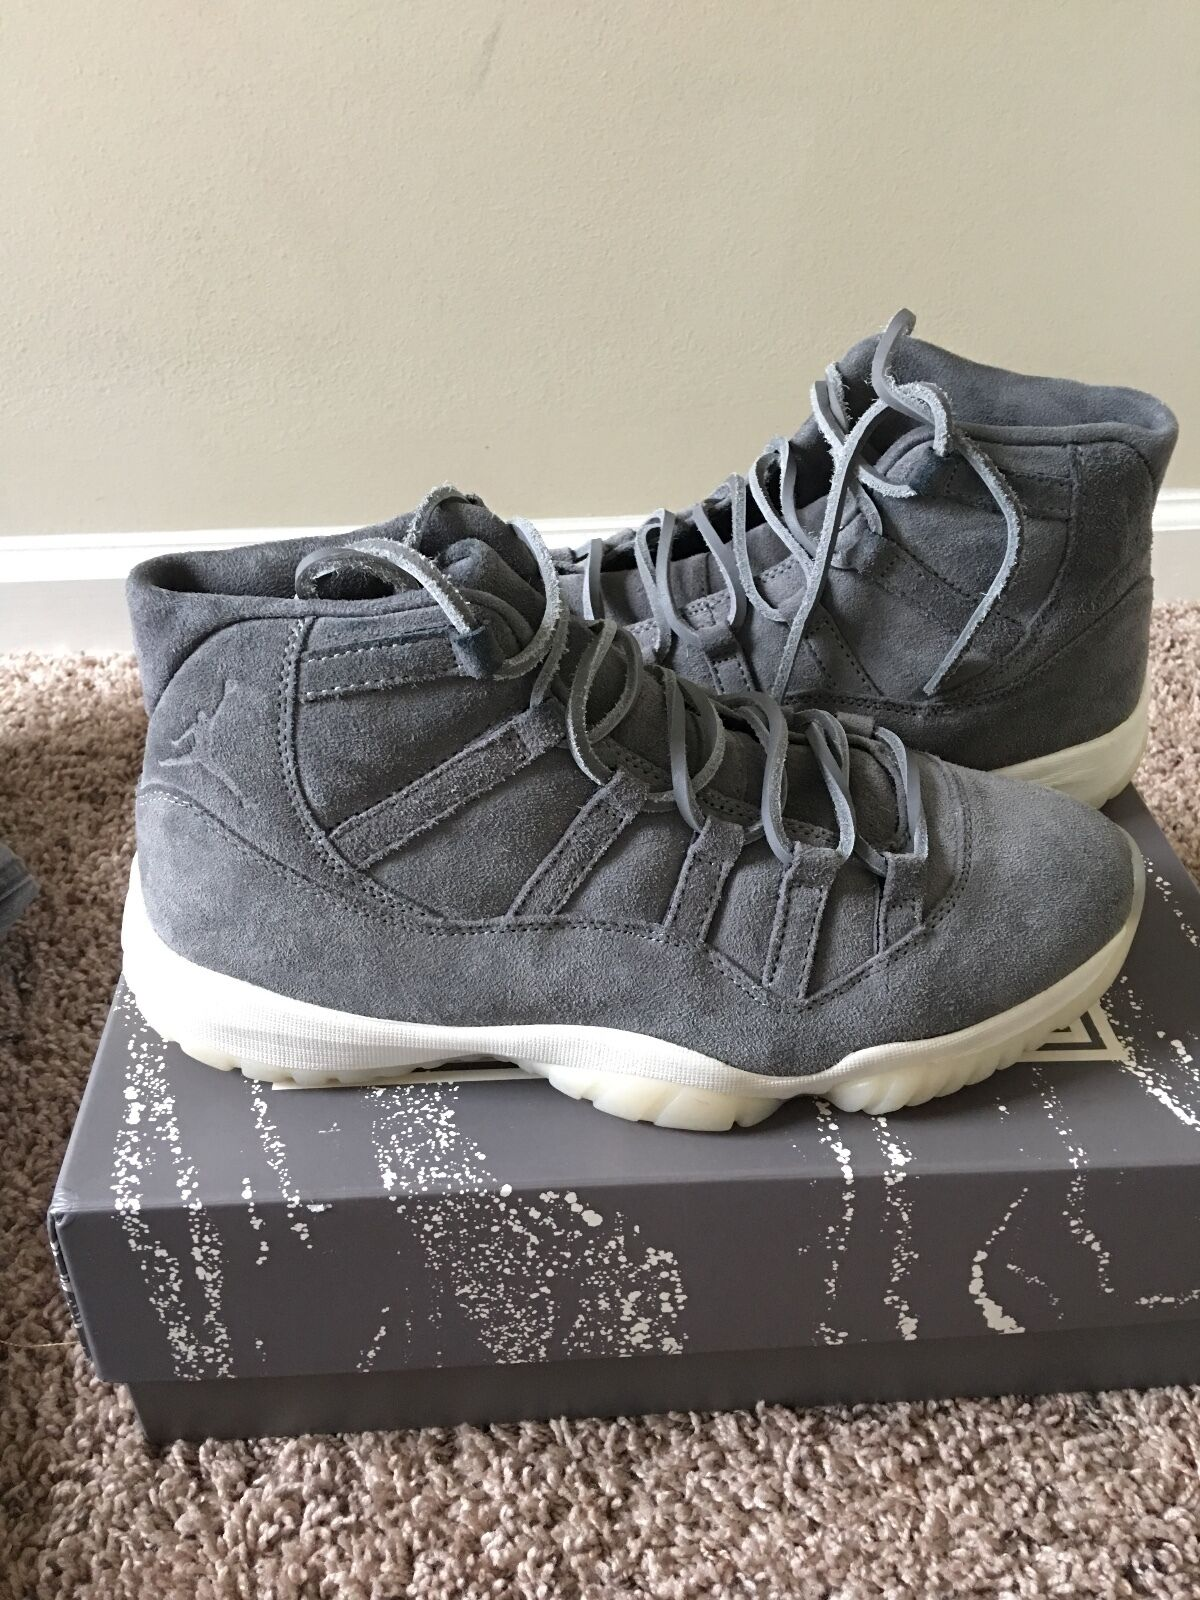 Jordan 11 suade. Size 10.5 it was only worn once.came with two pair of shoe lace